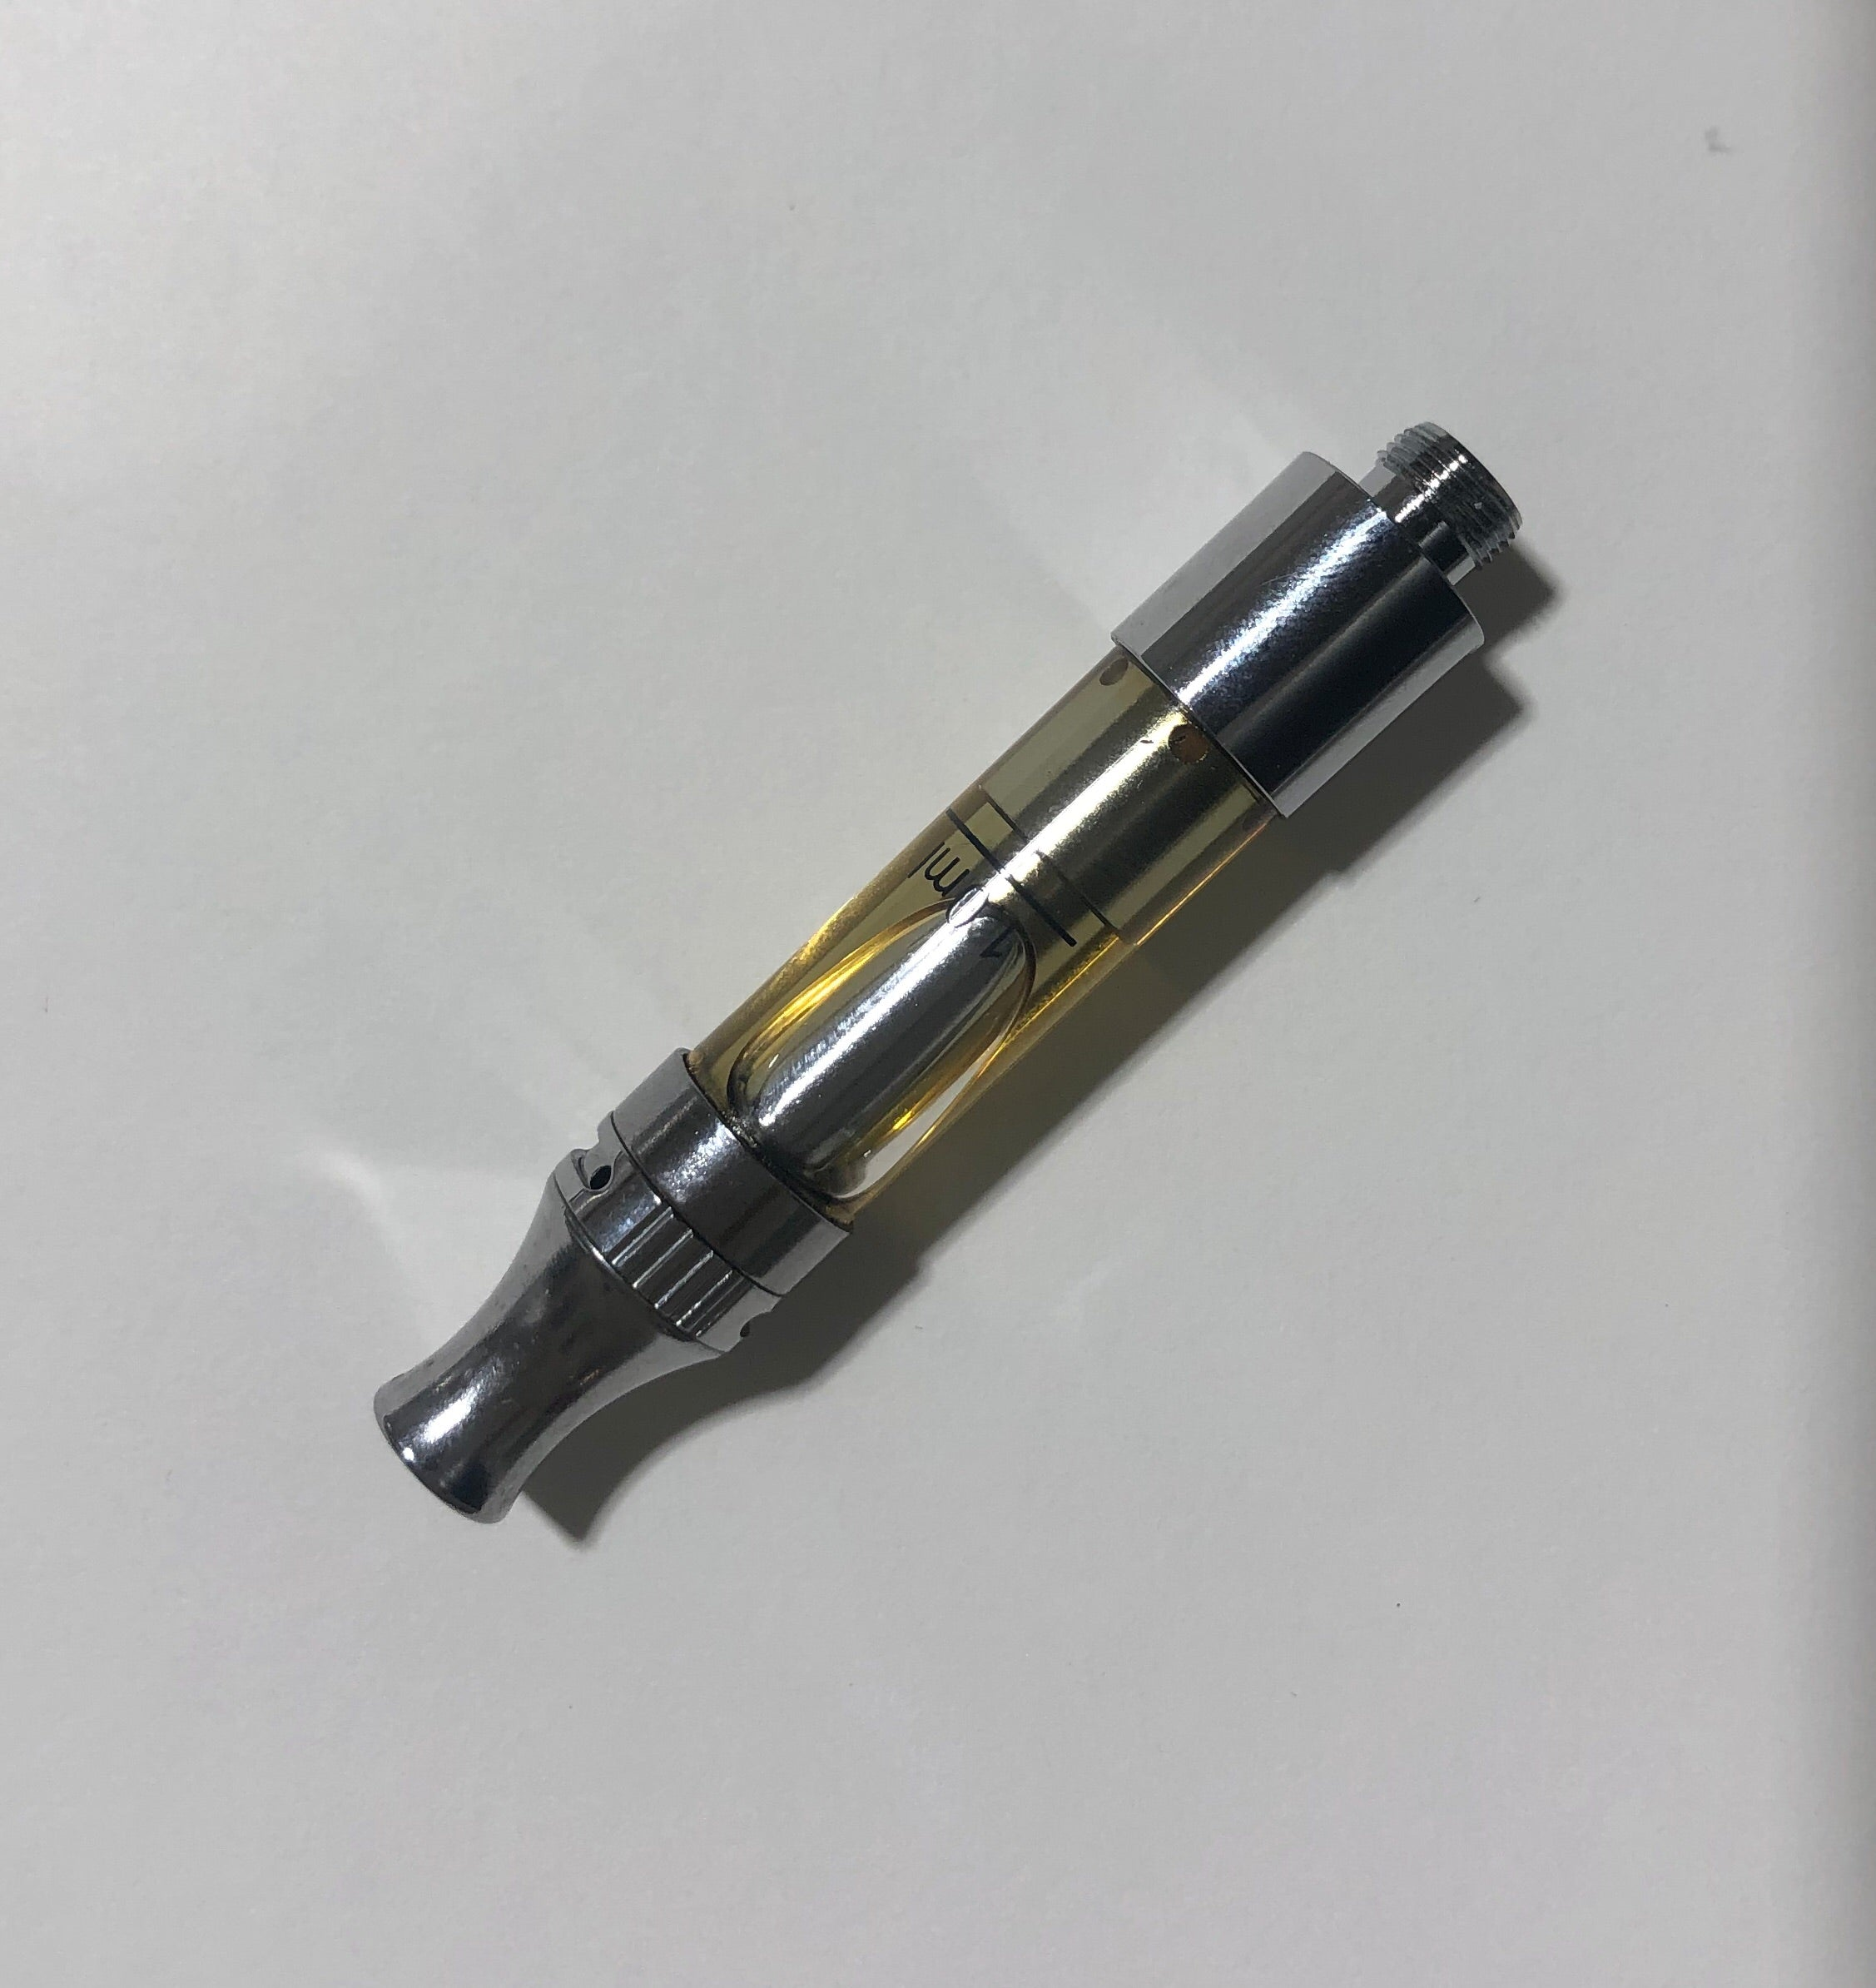 2mm glass cartridge .5 or 1.0 gram